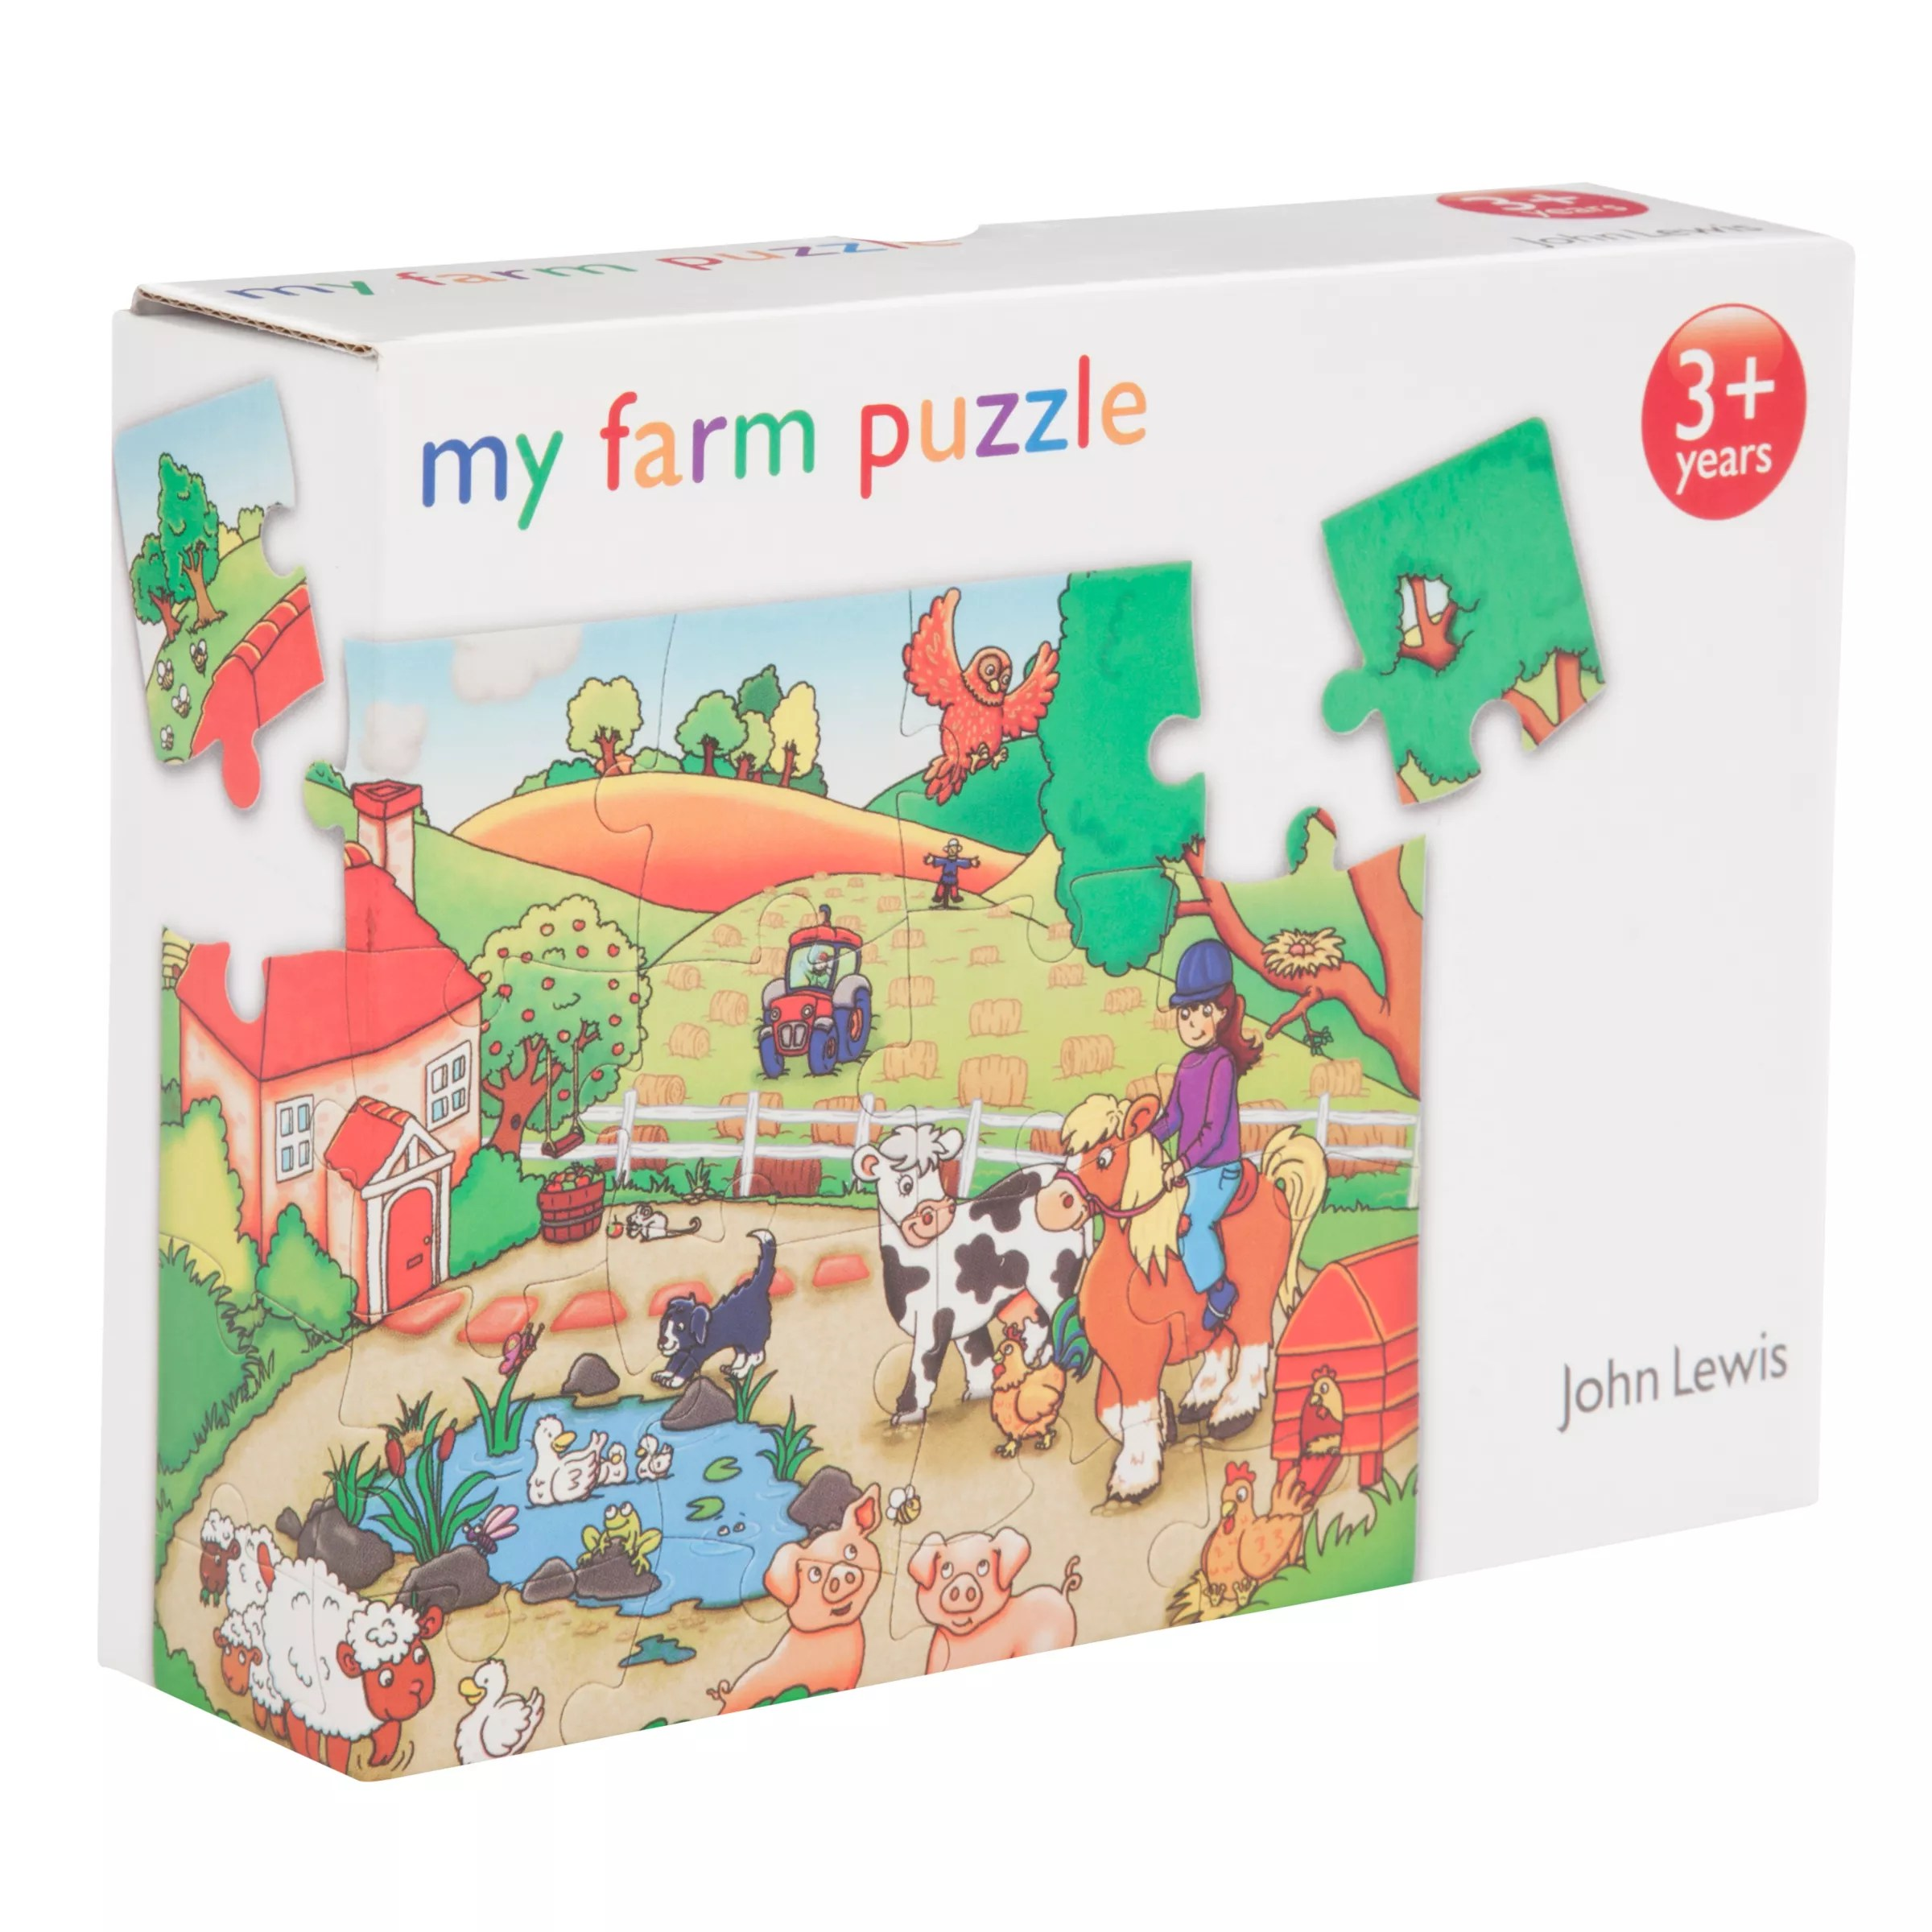 View All Games Puzzles John Lewis